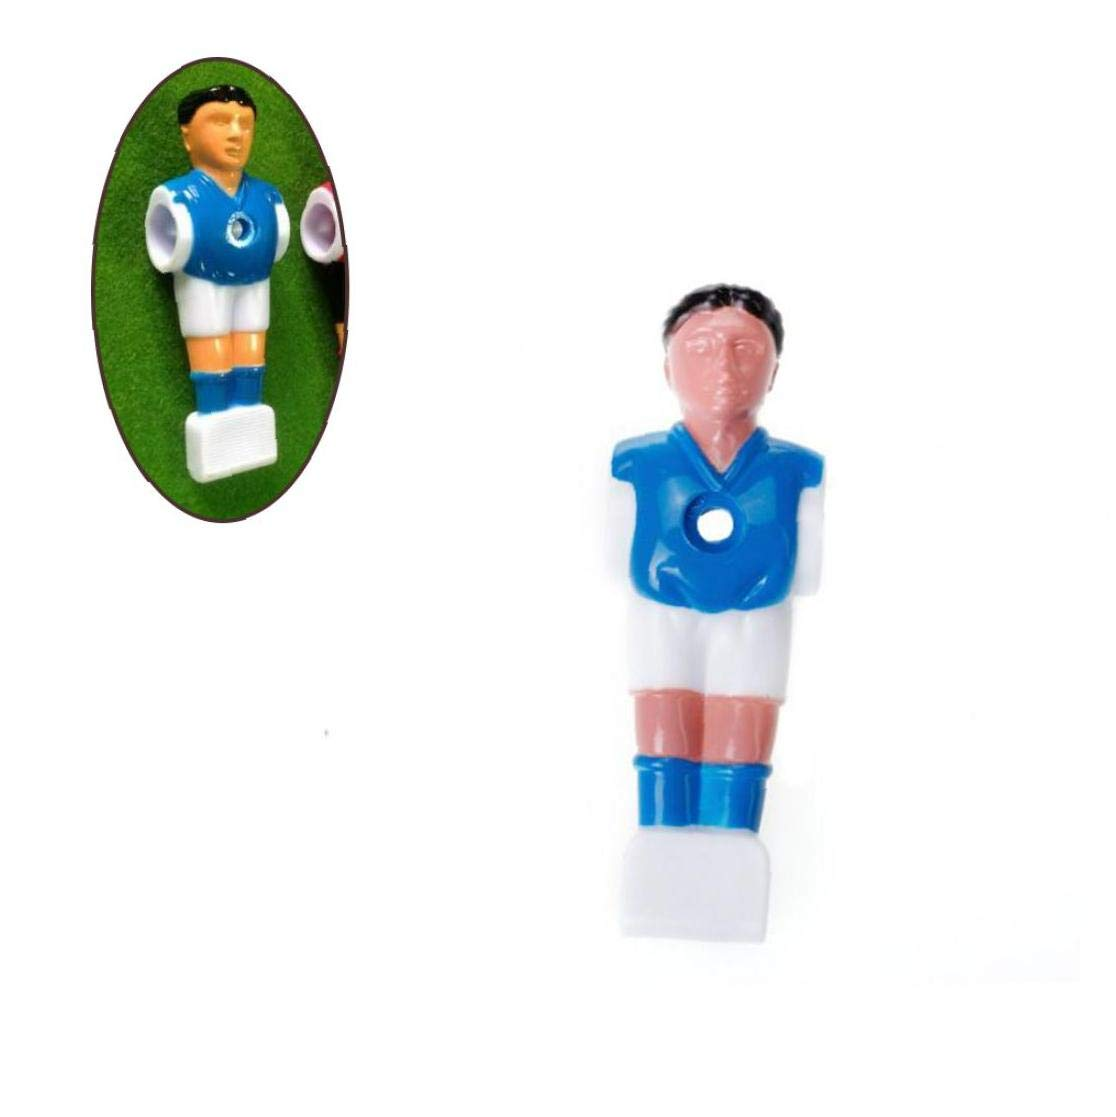 Blue Table Football Man Replacement Part 1.4m Table Football Multi Usage Plastic Desk Soccer Player